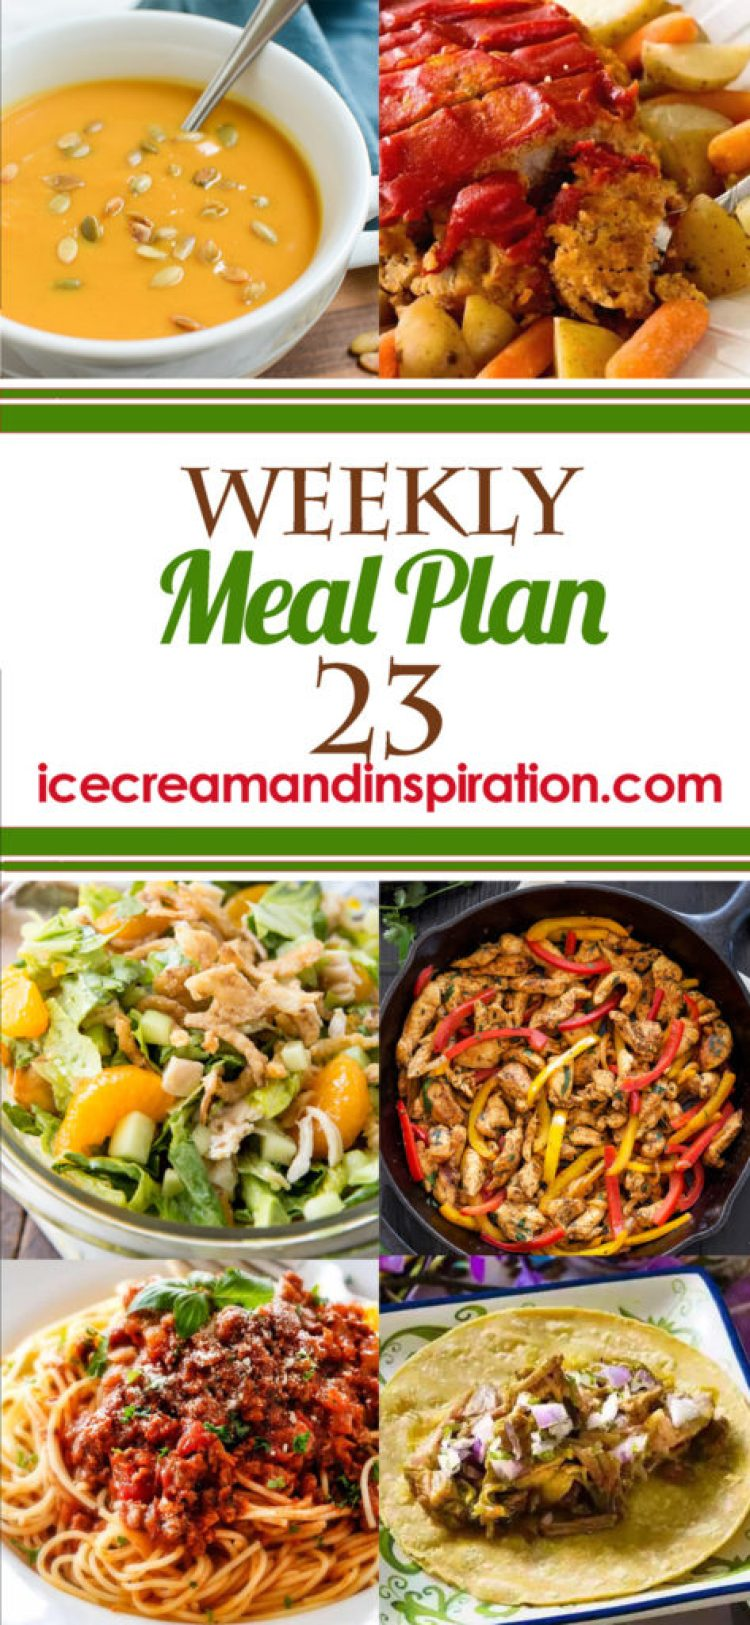 This week's meal plan has recipes for Spaghetti Bolognese, Sheet Pan Philly Cheesesteak, Indian Pulled Pork Tacos, Crock Pot Meatloaf and Veggies, and more! Plus, recipes for bread and dessert.